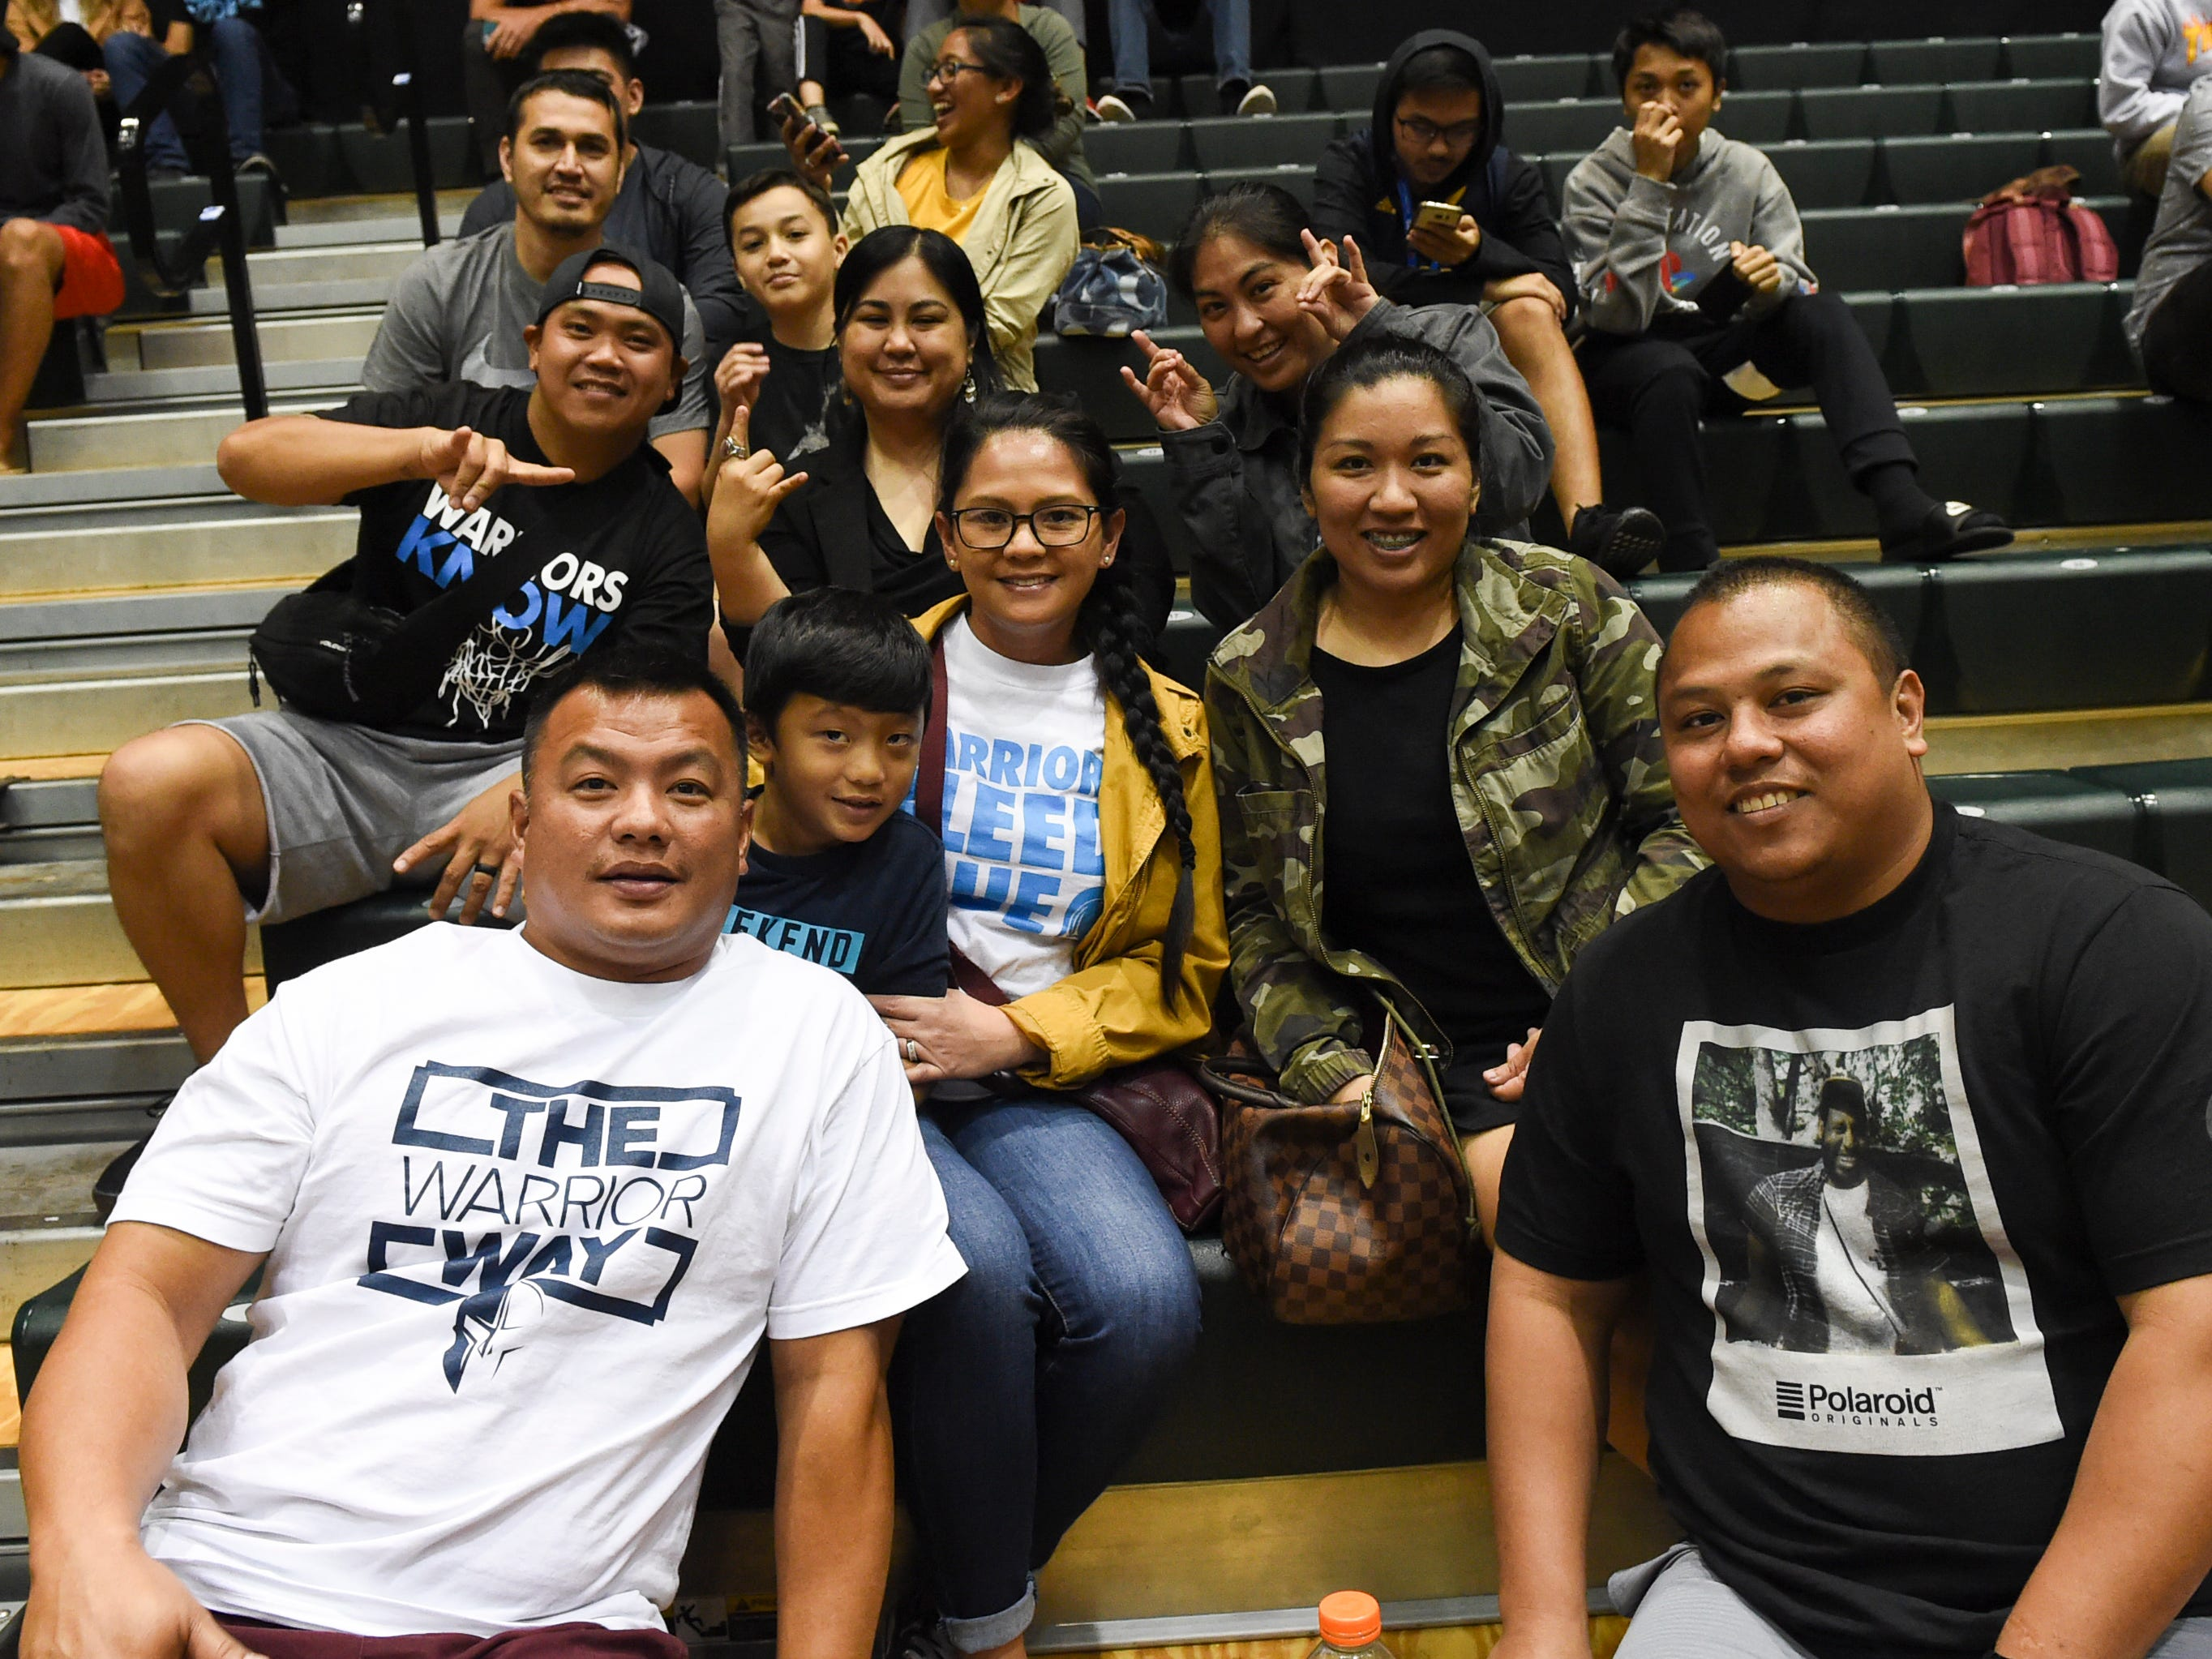 Basketball fans make it to the IIAAG Boys' Basketball Championship game at the University of Guam Calvo Field House in Mangilao, March 15, 2019.